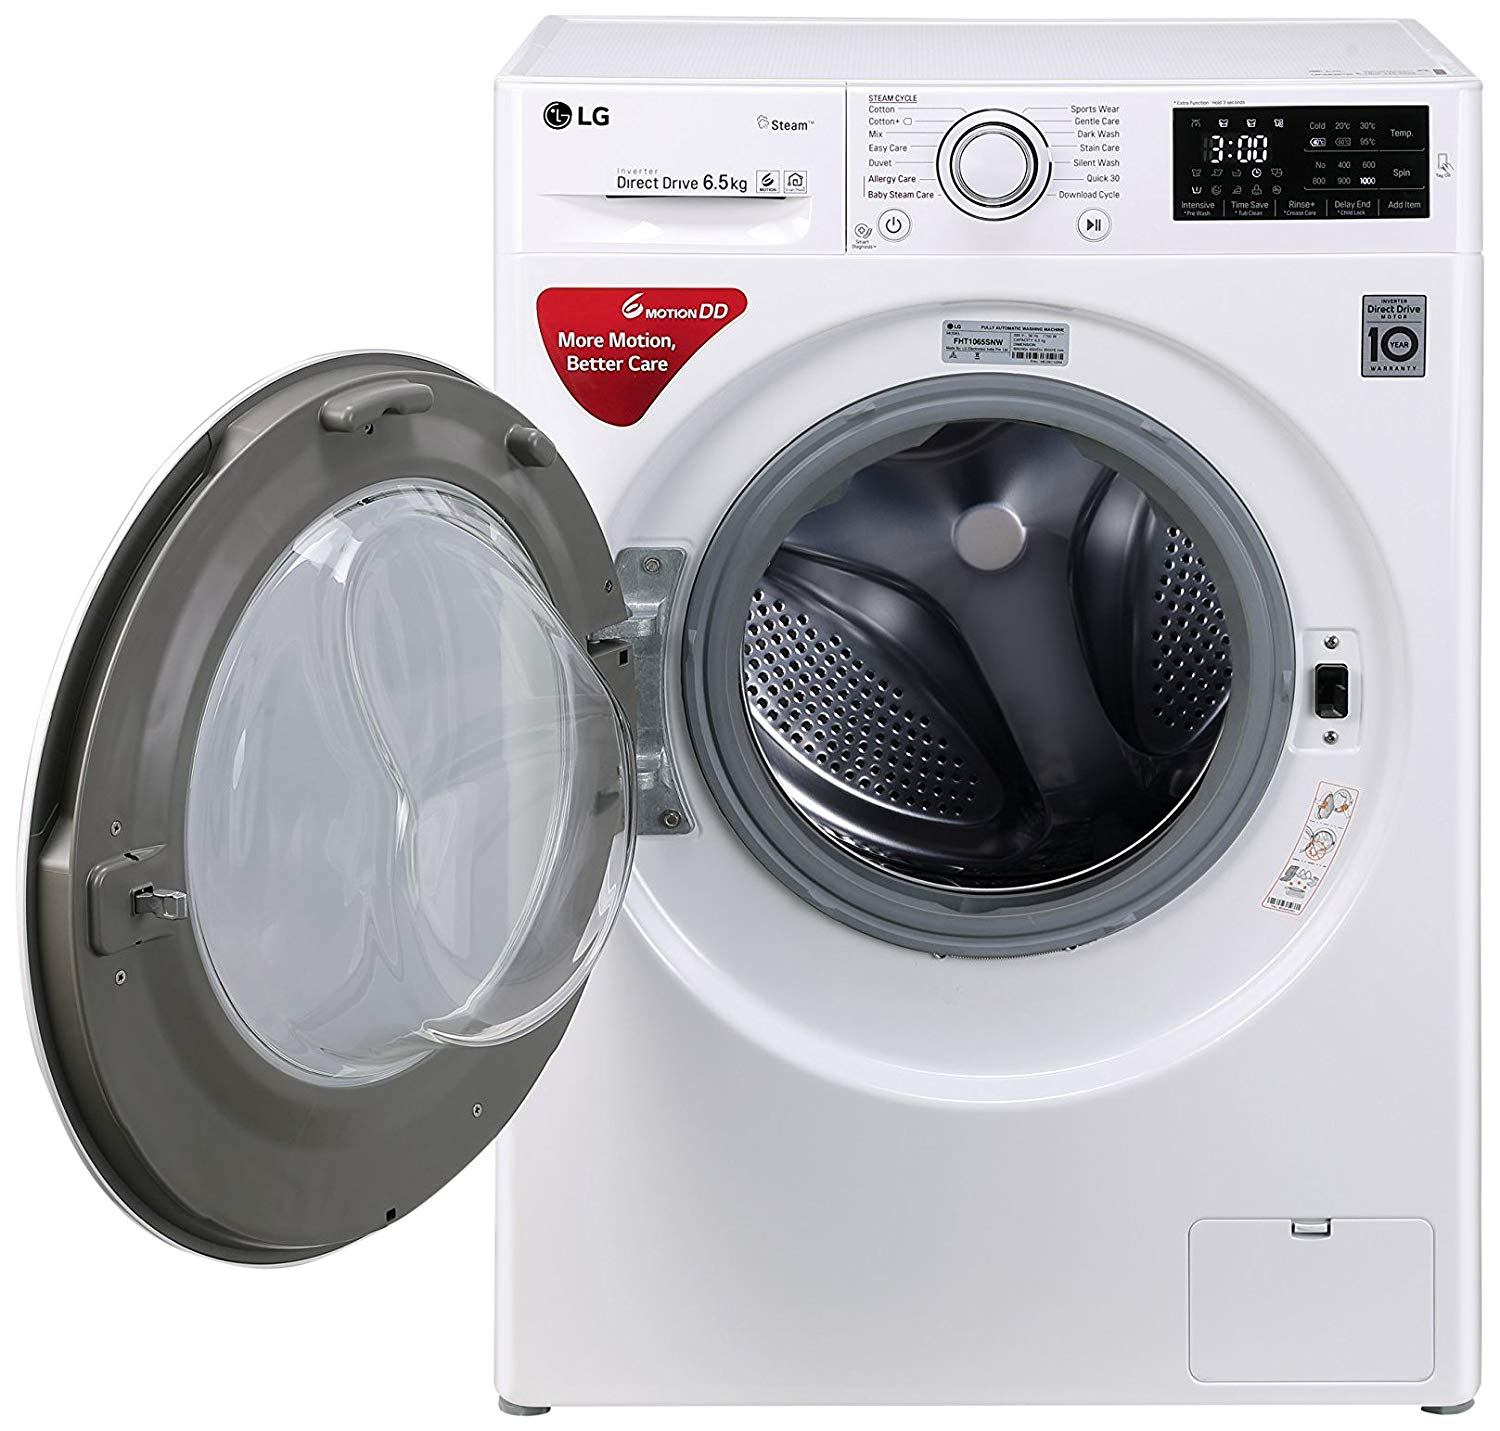 Does LG make better washing machines vs Bosch